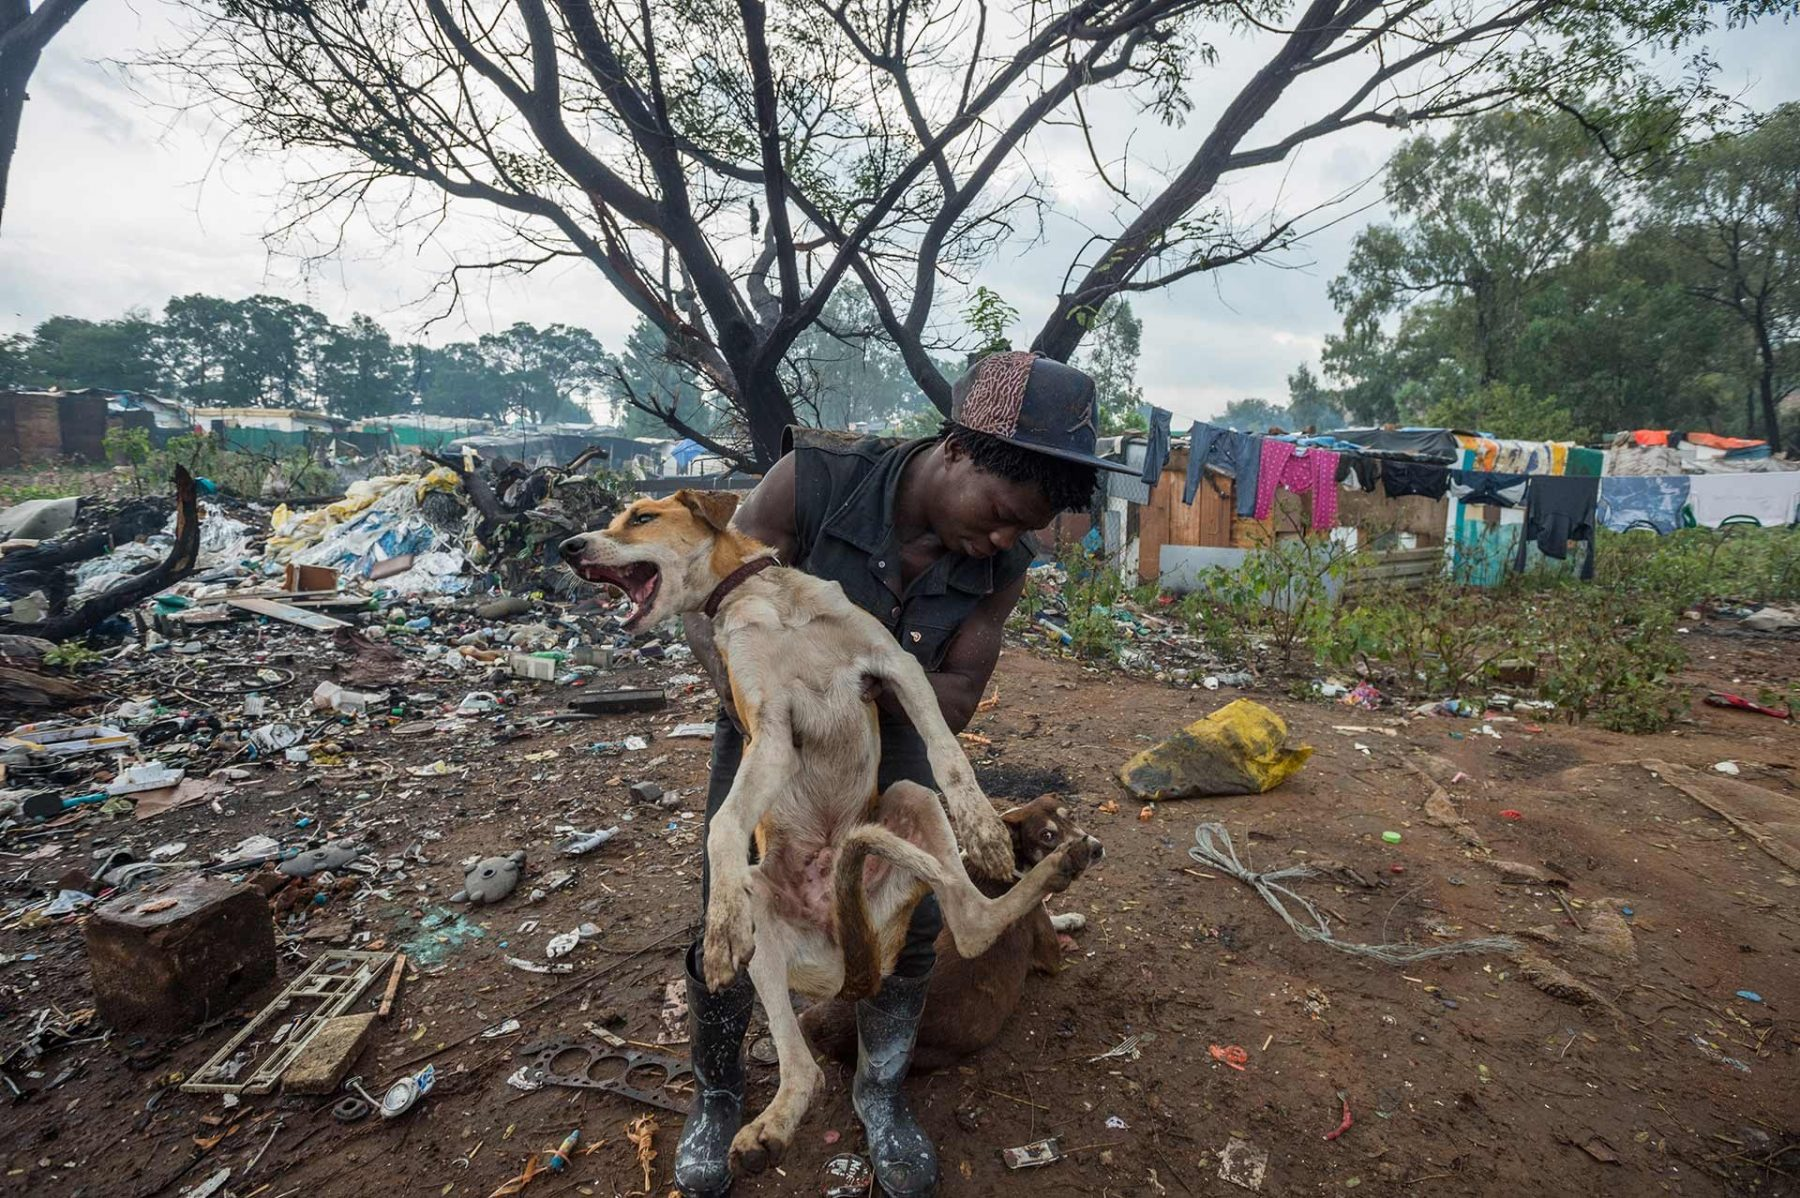 Moses, helping to collect sick and injured animals at the Randfontein municipal dumping site in Johannesburg. South Africa.